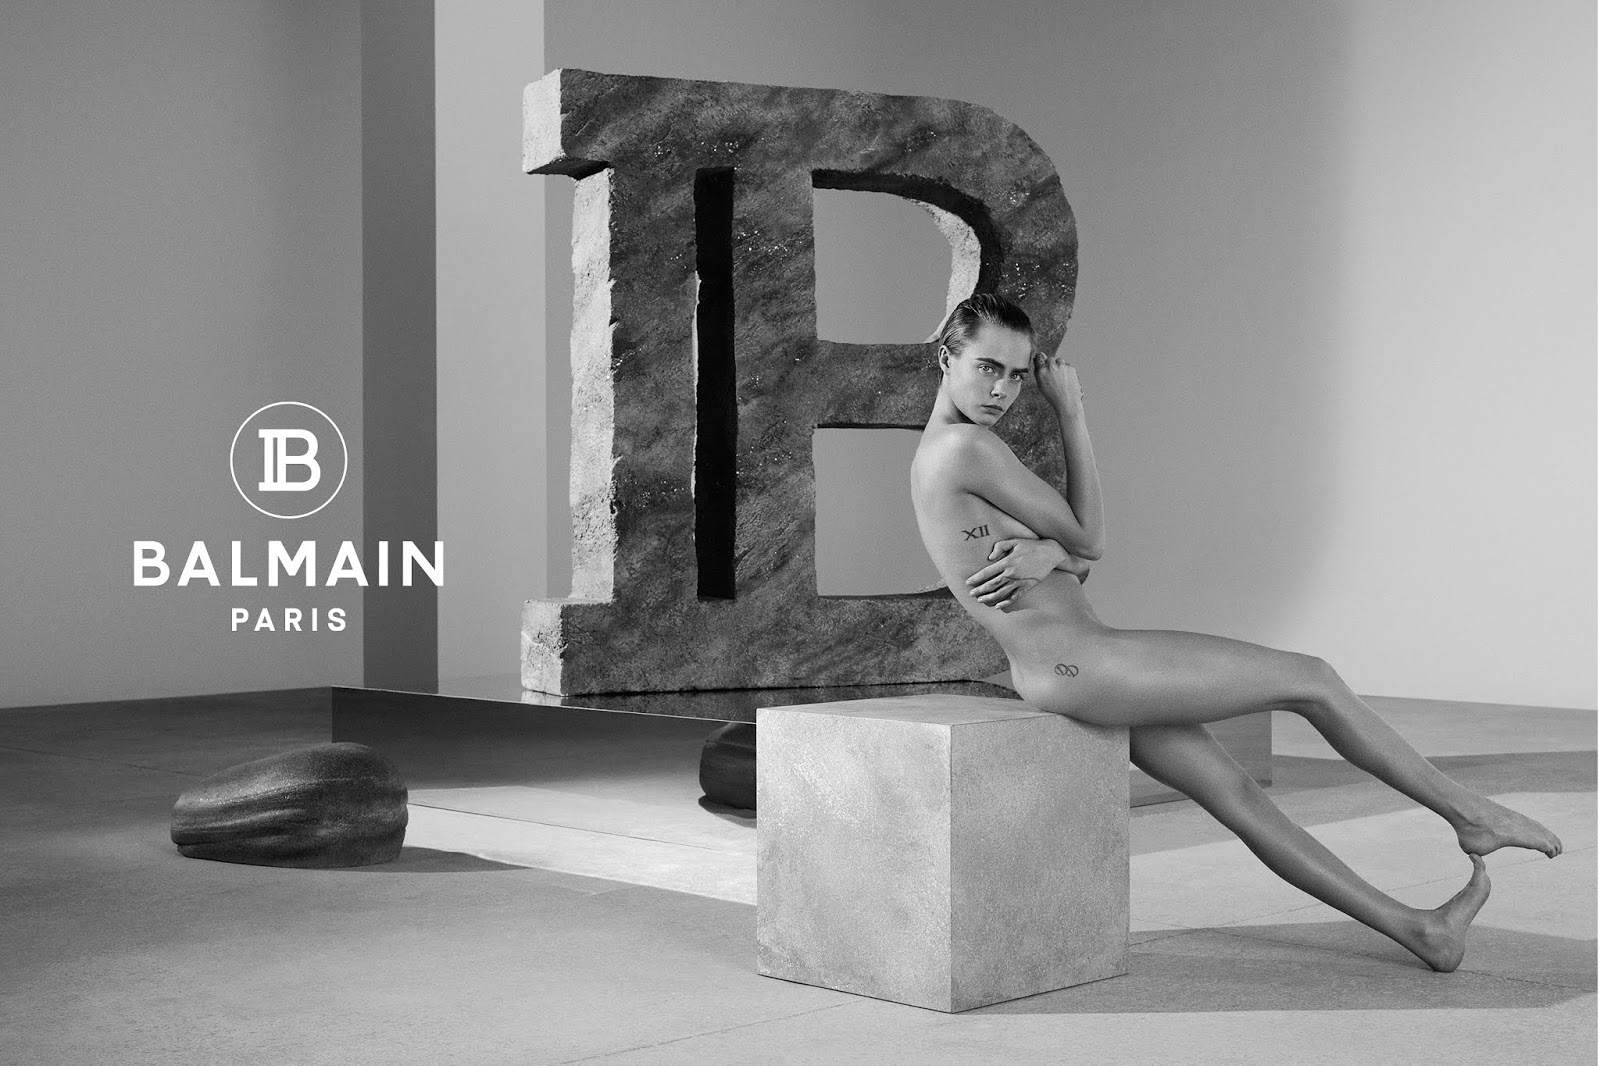 Cara Delevingne - poses nude for the spring 2019 Balmain campaign